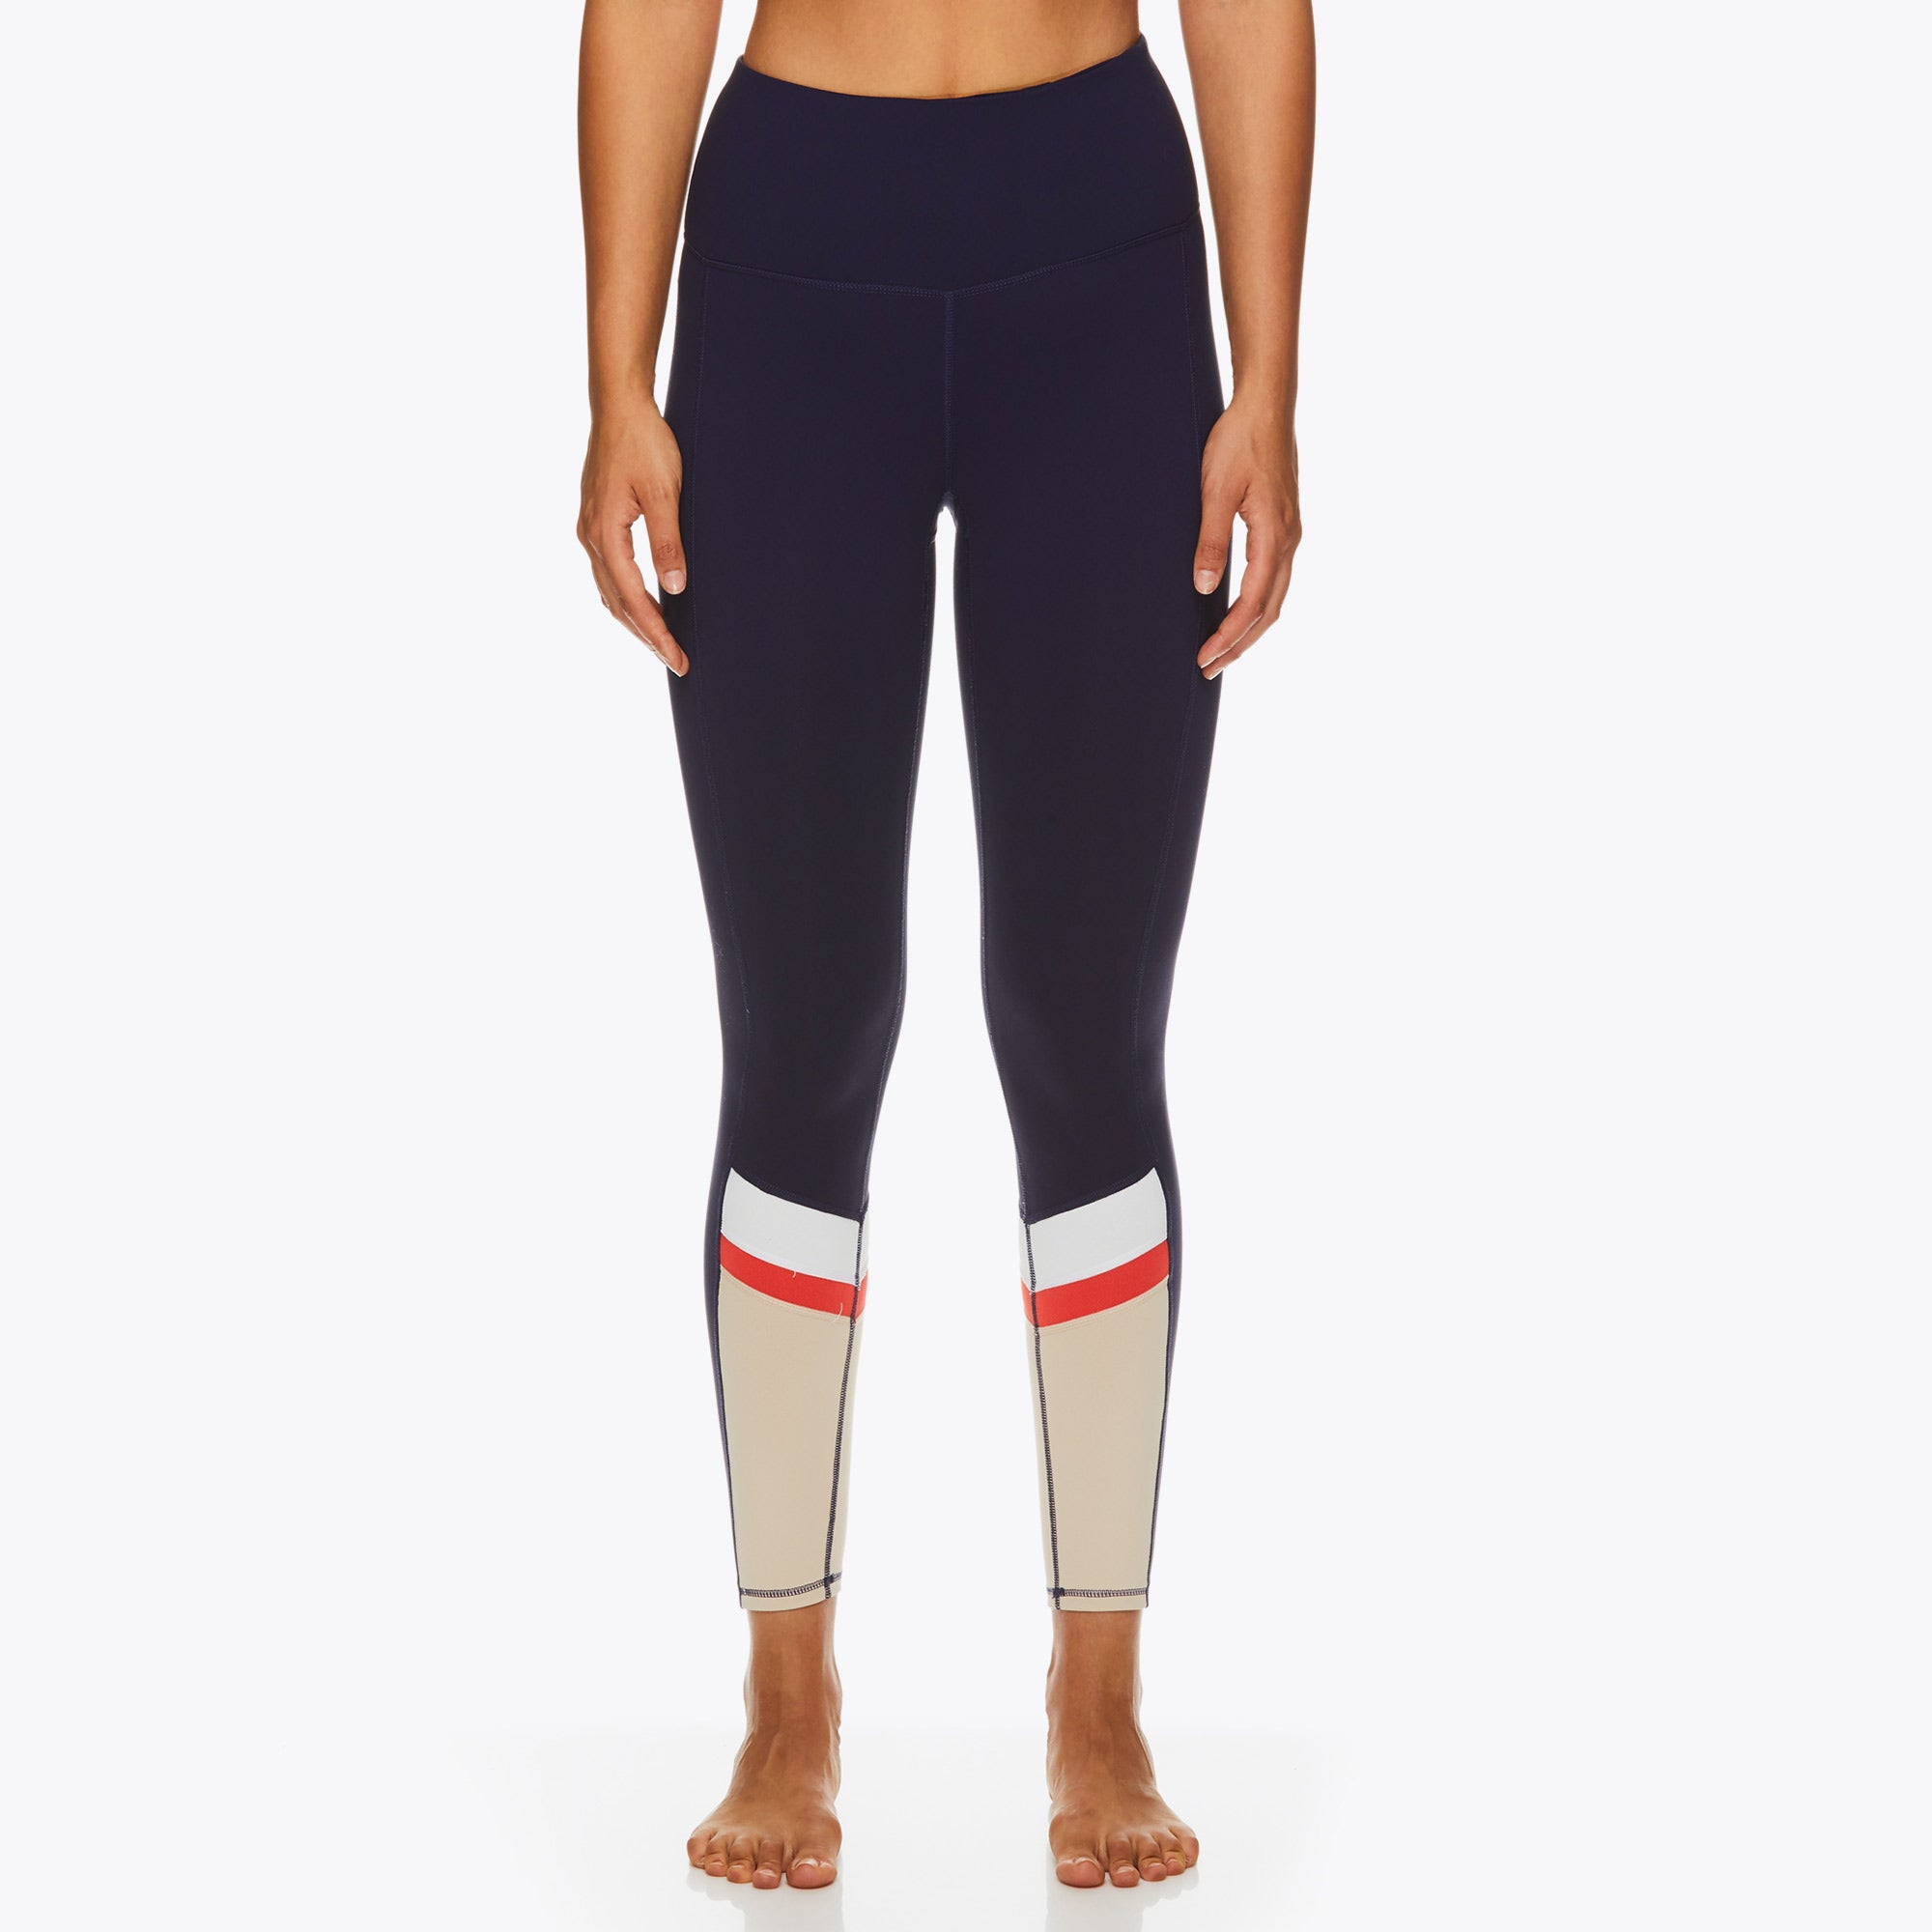 Image of Gaiam X Jessica Biel Tribeca 7/8 Hi Rise Legging